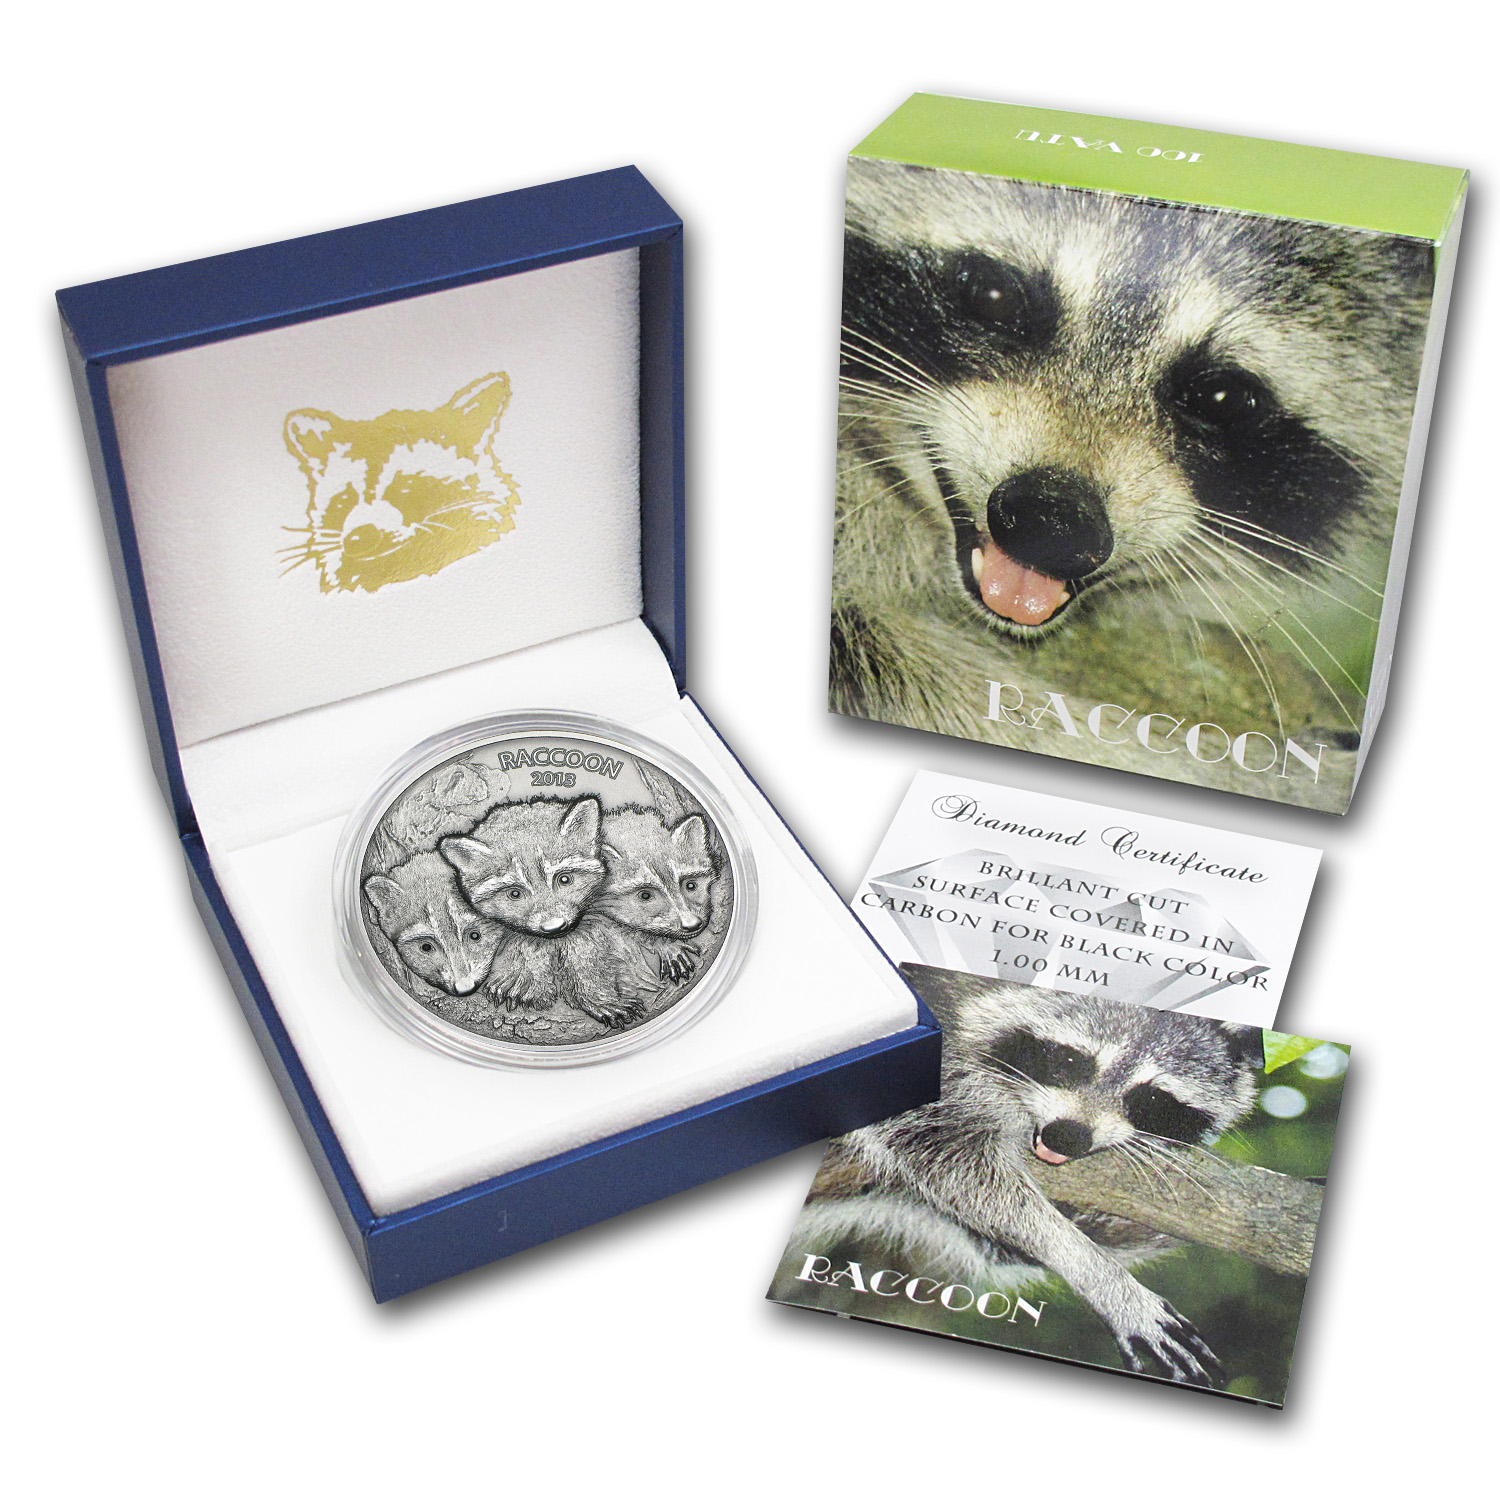 Vanuatu 2013 2 oz Silver Forest Animals - The Raccoon